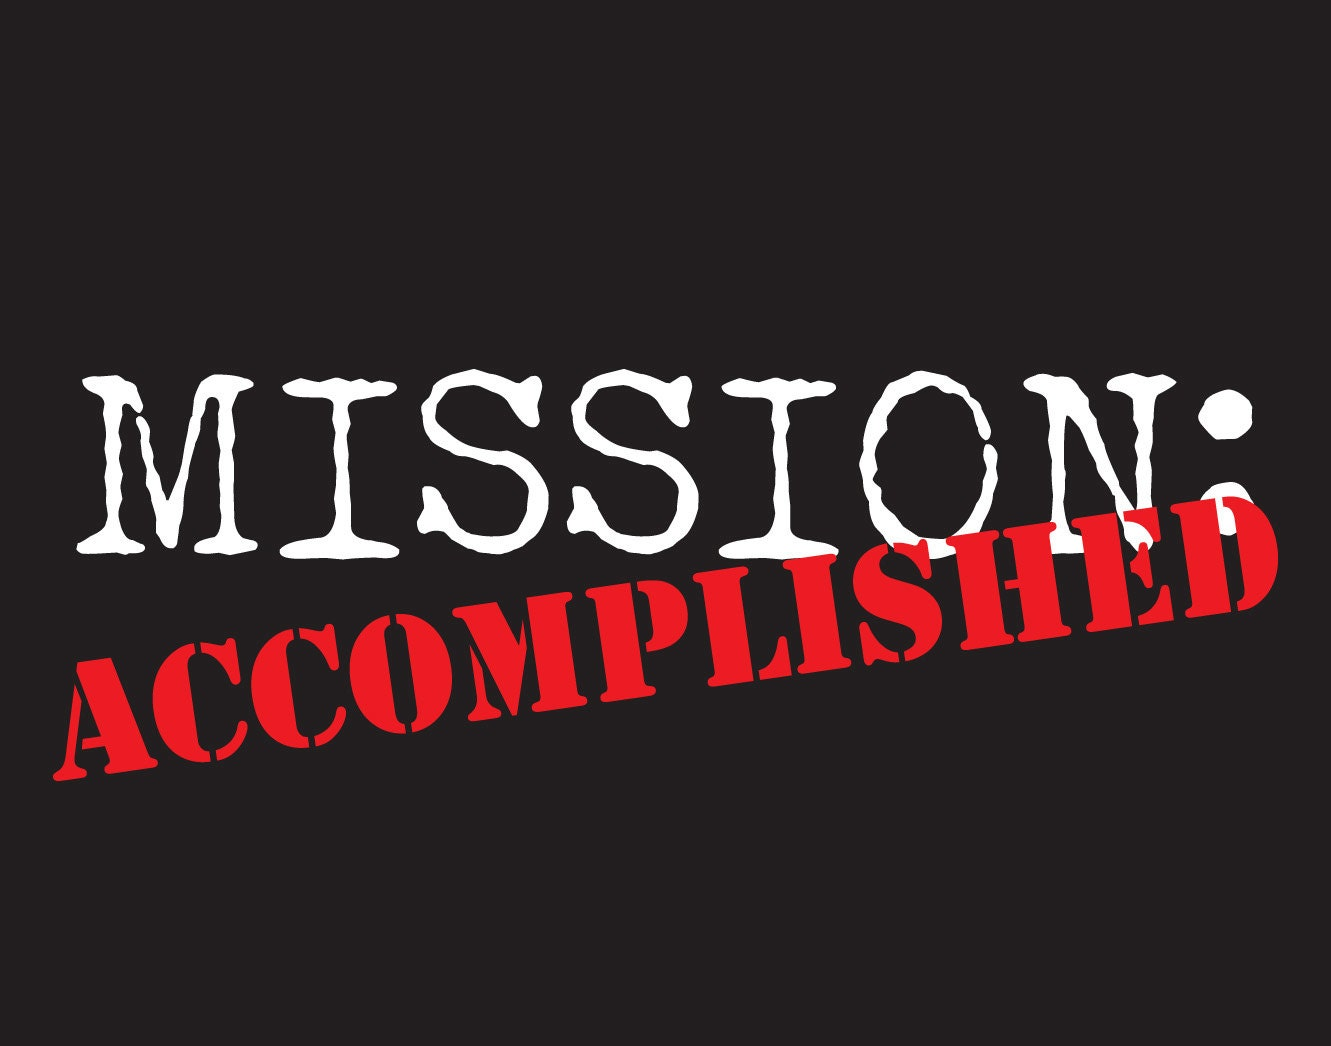 Mission Accomplished Missionary Poster Return Missionary